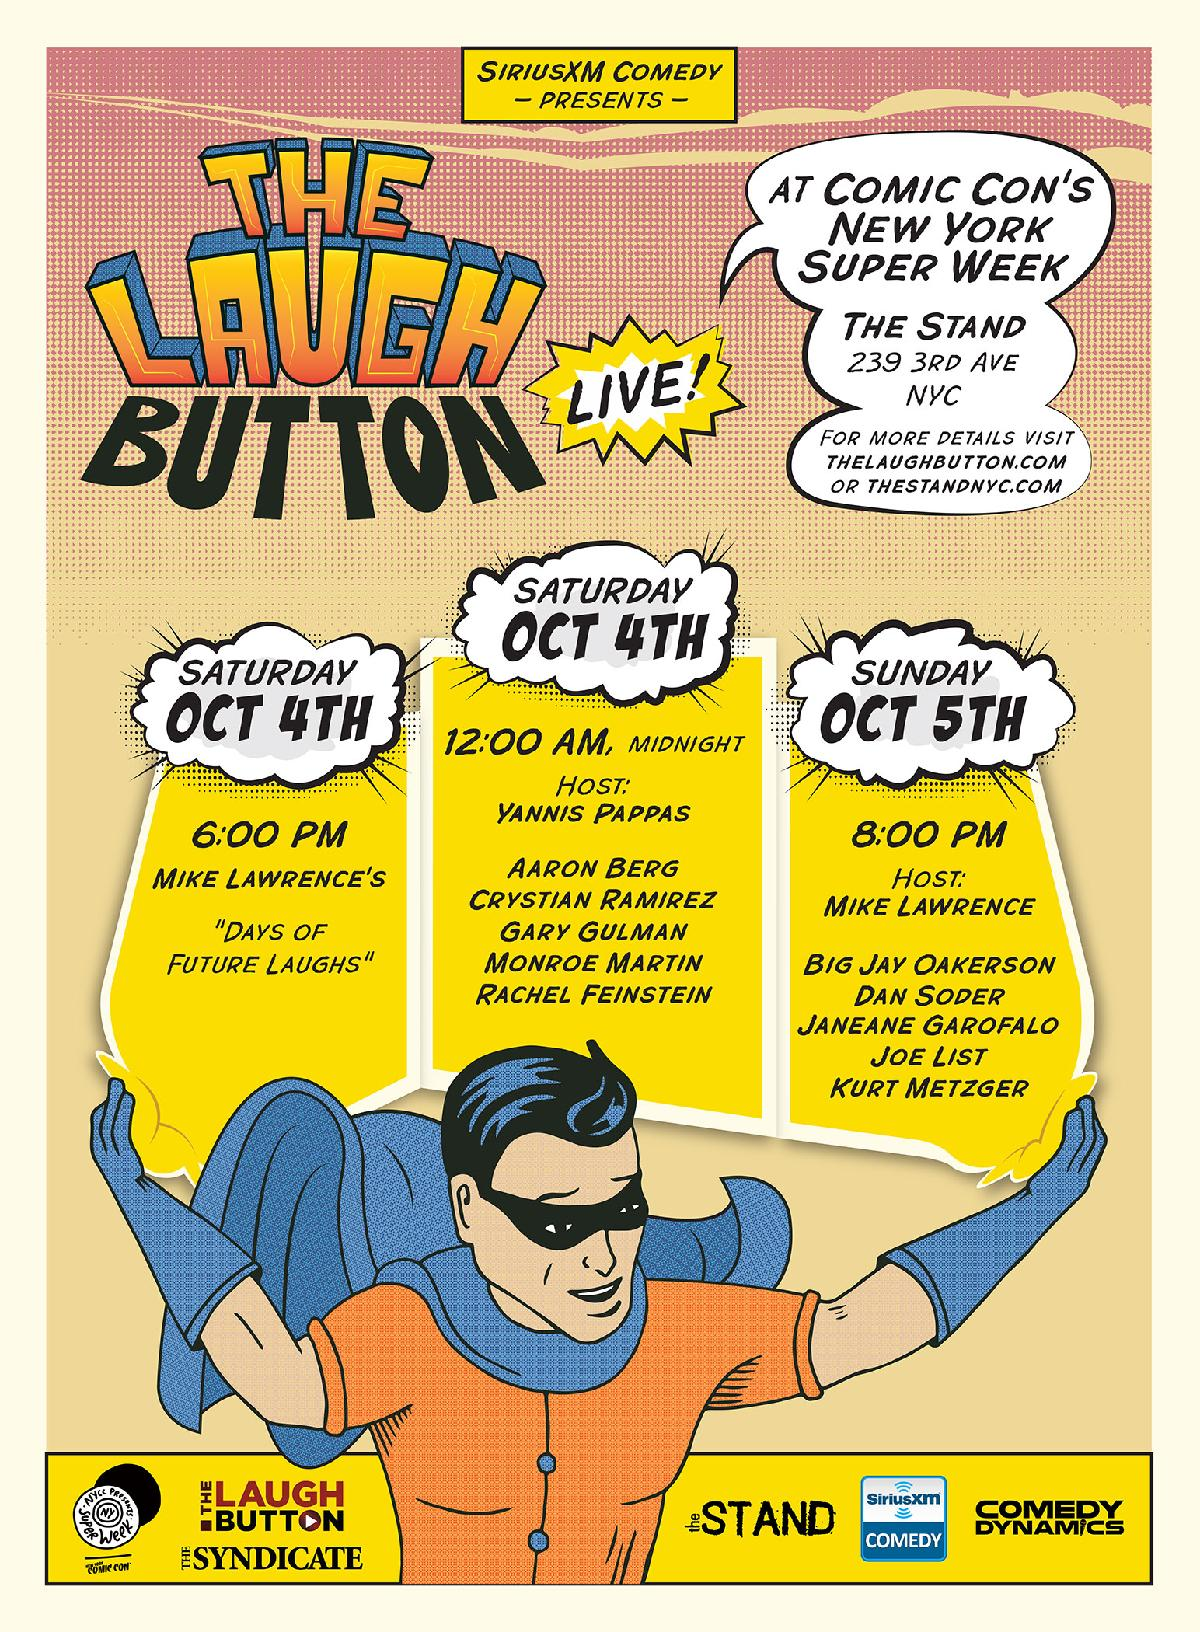 THE LAUGH BUTTON LIVE at COMIC CONS NEW YORK SUPER WEEK with SIRIUSXM COMEDY Presents Janeane Garofalo Dan Soder Mike Lawrence Kurt Metzger Big Jay Oakerson Joe List Rachel Feinstein and More